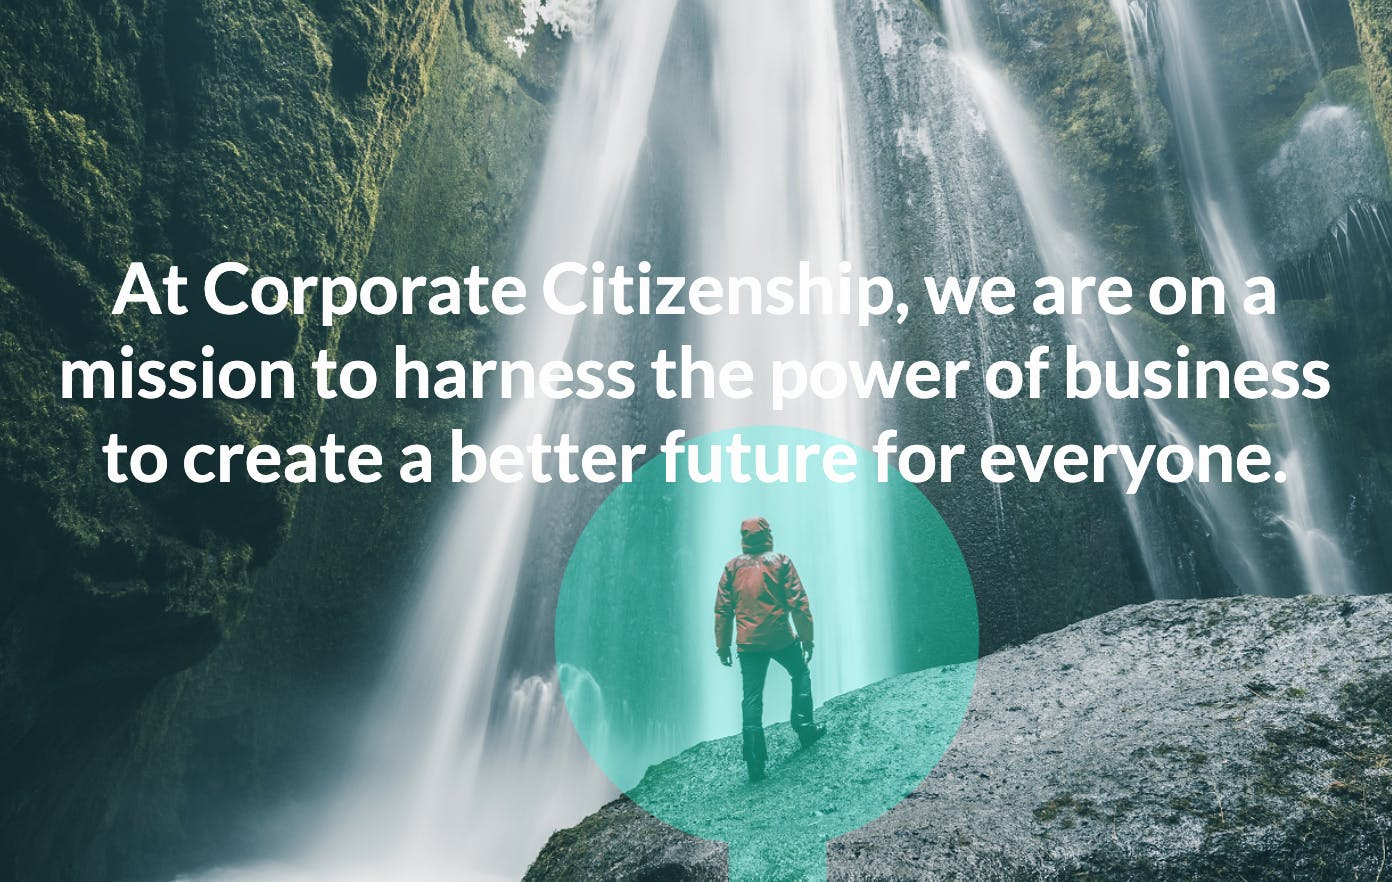 corporate citizenship acquired by environmental consulting firm slr - Corporate Citizenship acquired by environmental consulting firm SLR